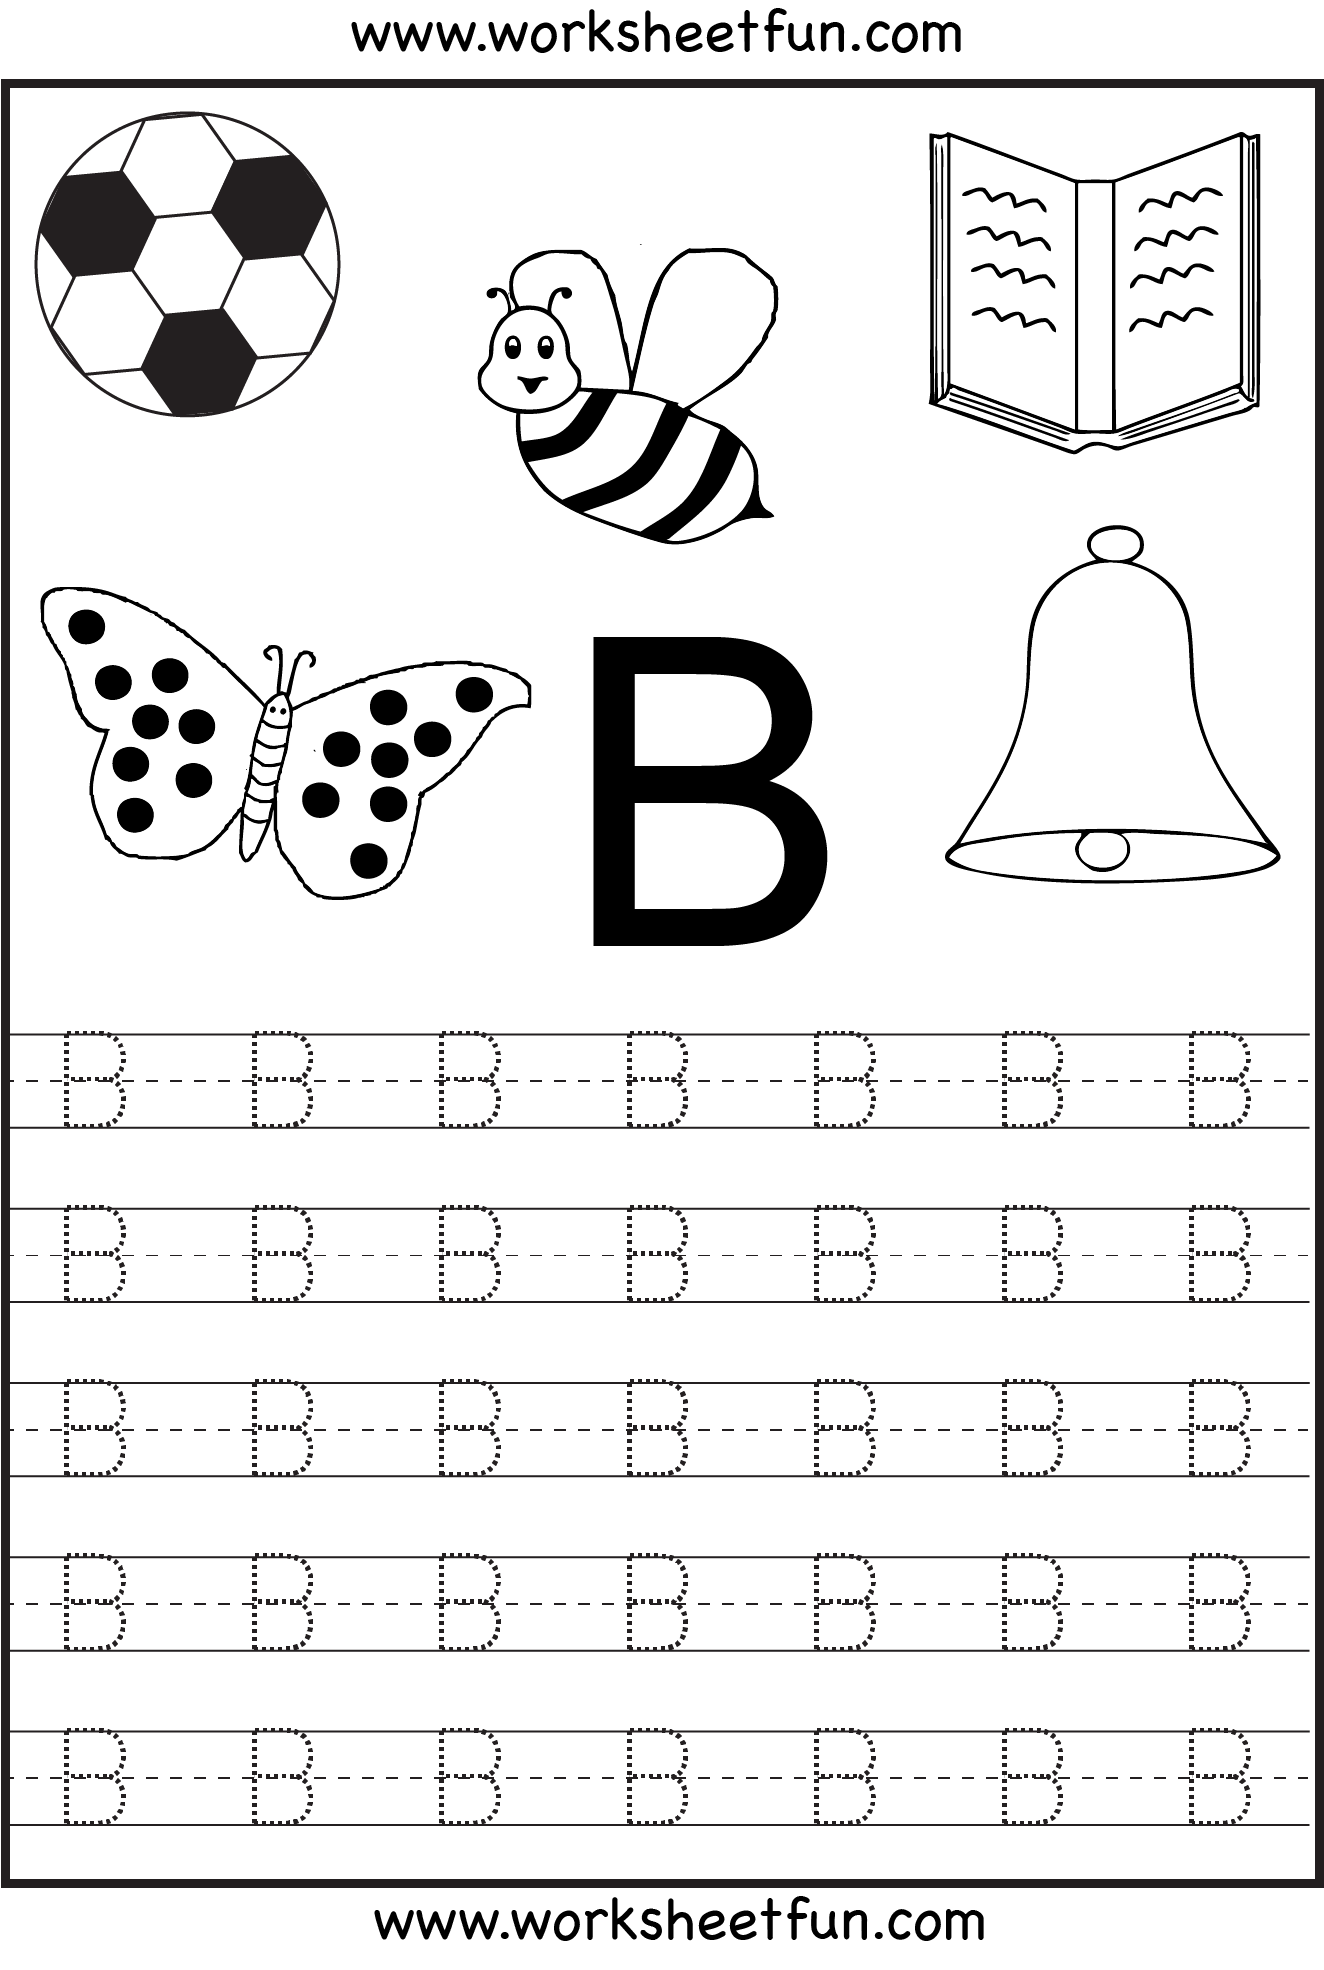 This is a picture of Smart Alphabet Letters to Trace